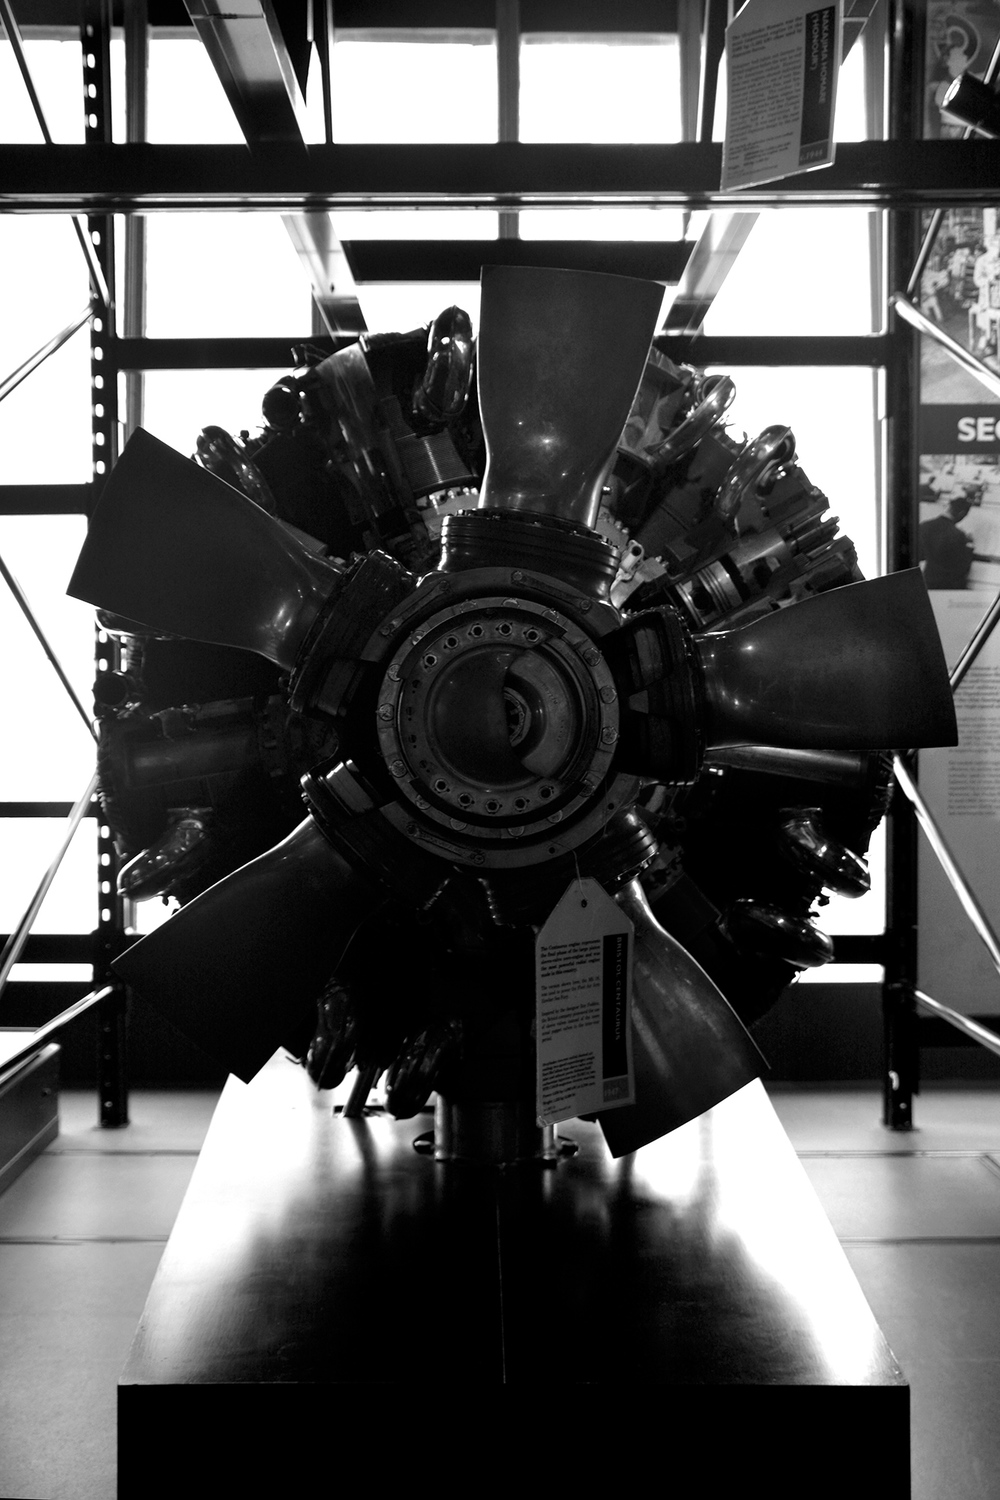 Once I arrived to the airplane engines room, I then realised that I was wasting my time complaining. So I changed my perspective and started to play with these big and complex - not-boring anymore - engines.